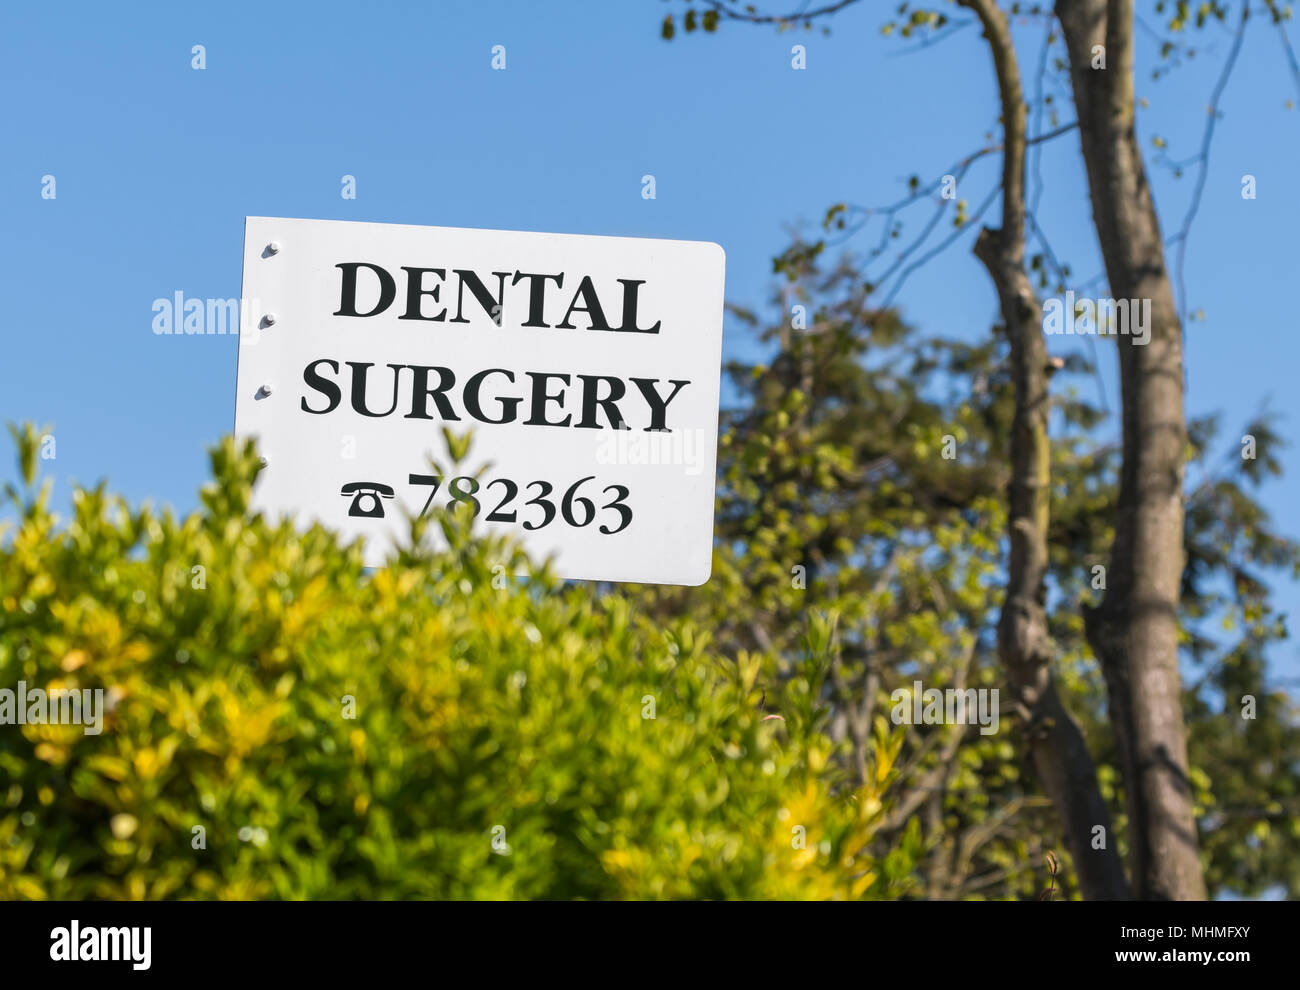 Dental surgery sign in the UK. Dentist surgery. Dentists practice. - Stock Image